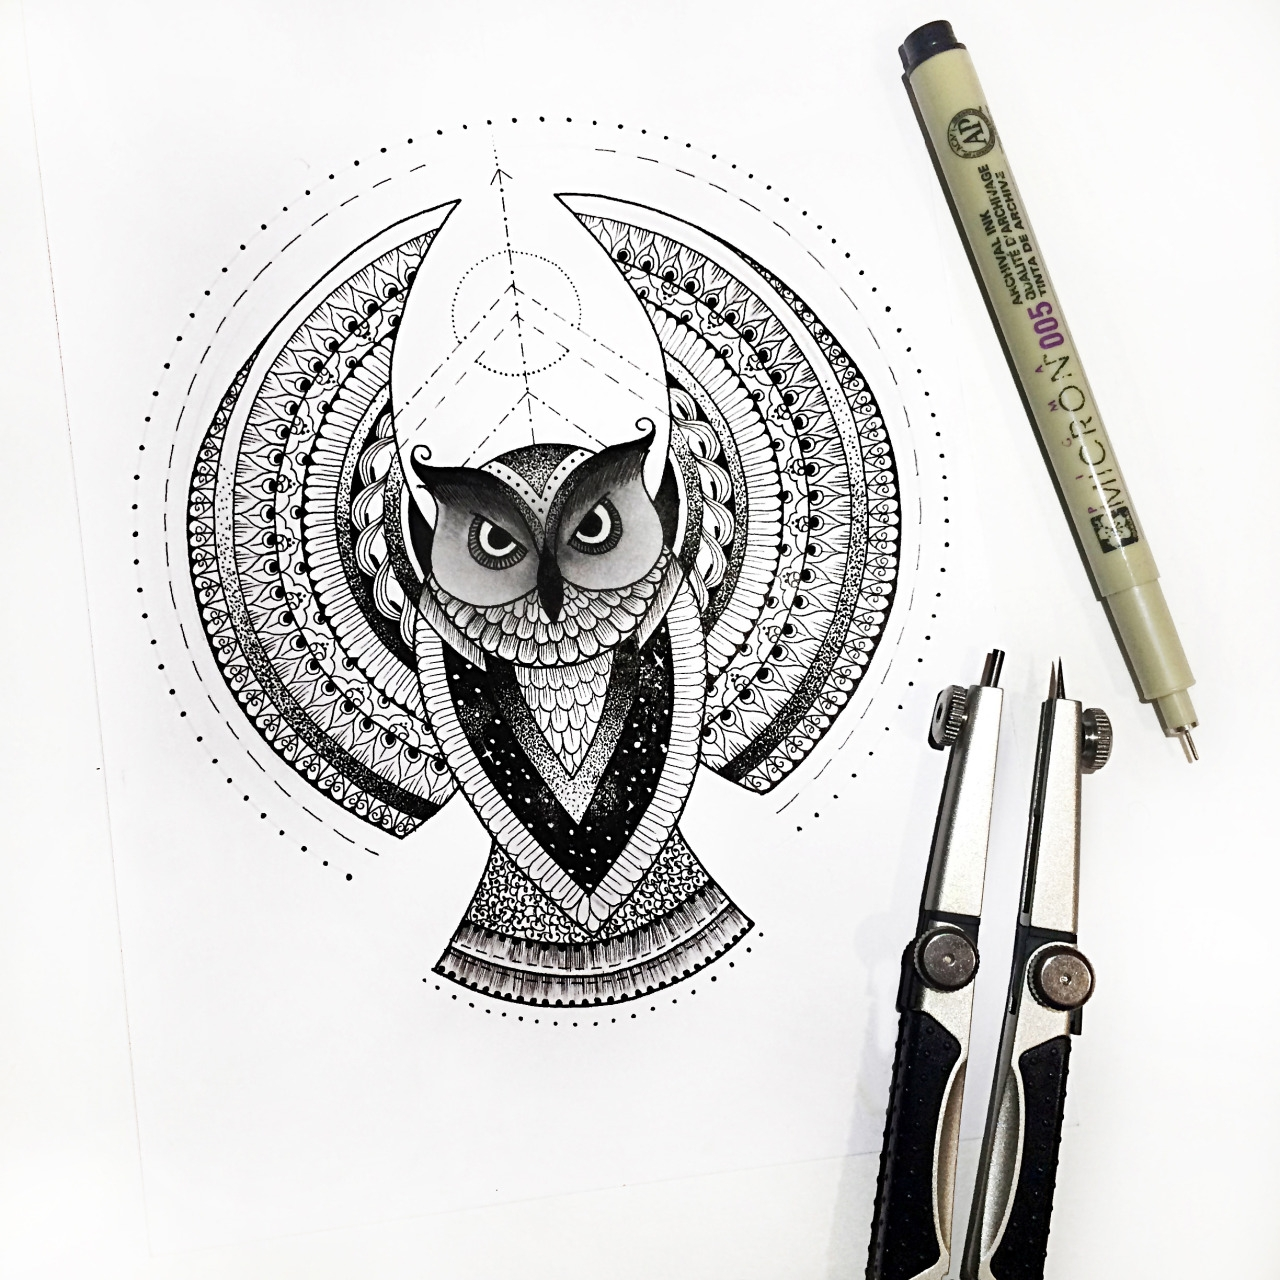 07-Fearless-Owl-Dilrani-Kauris-Symmetry-and-Style-in-Mandala-and-Mehndi-Drawings-www-designstack-co